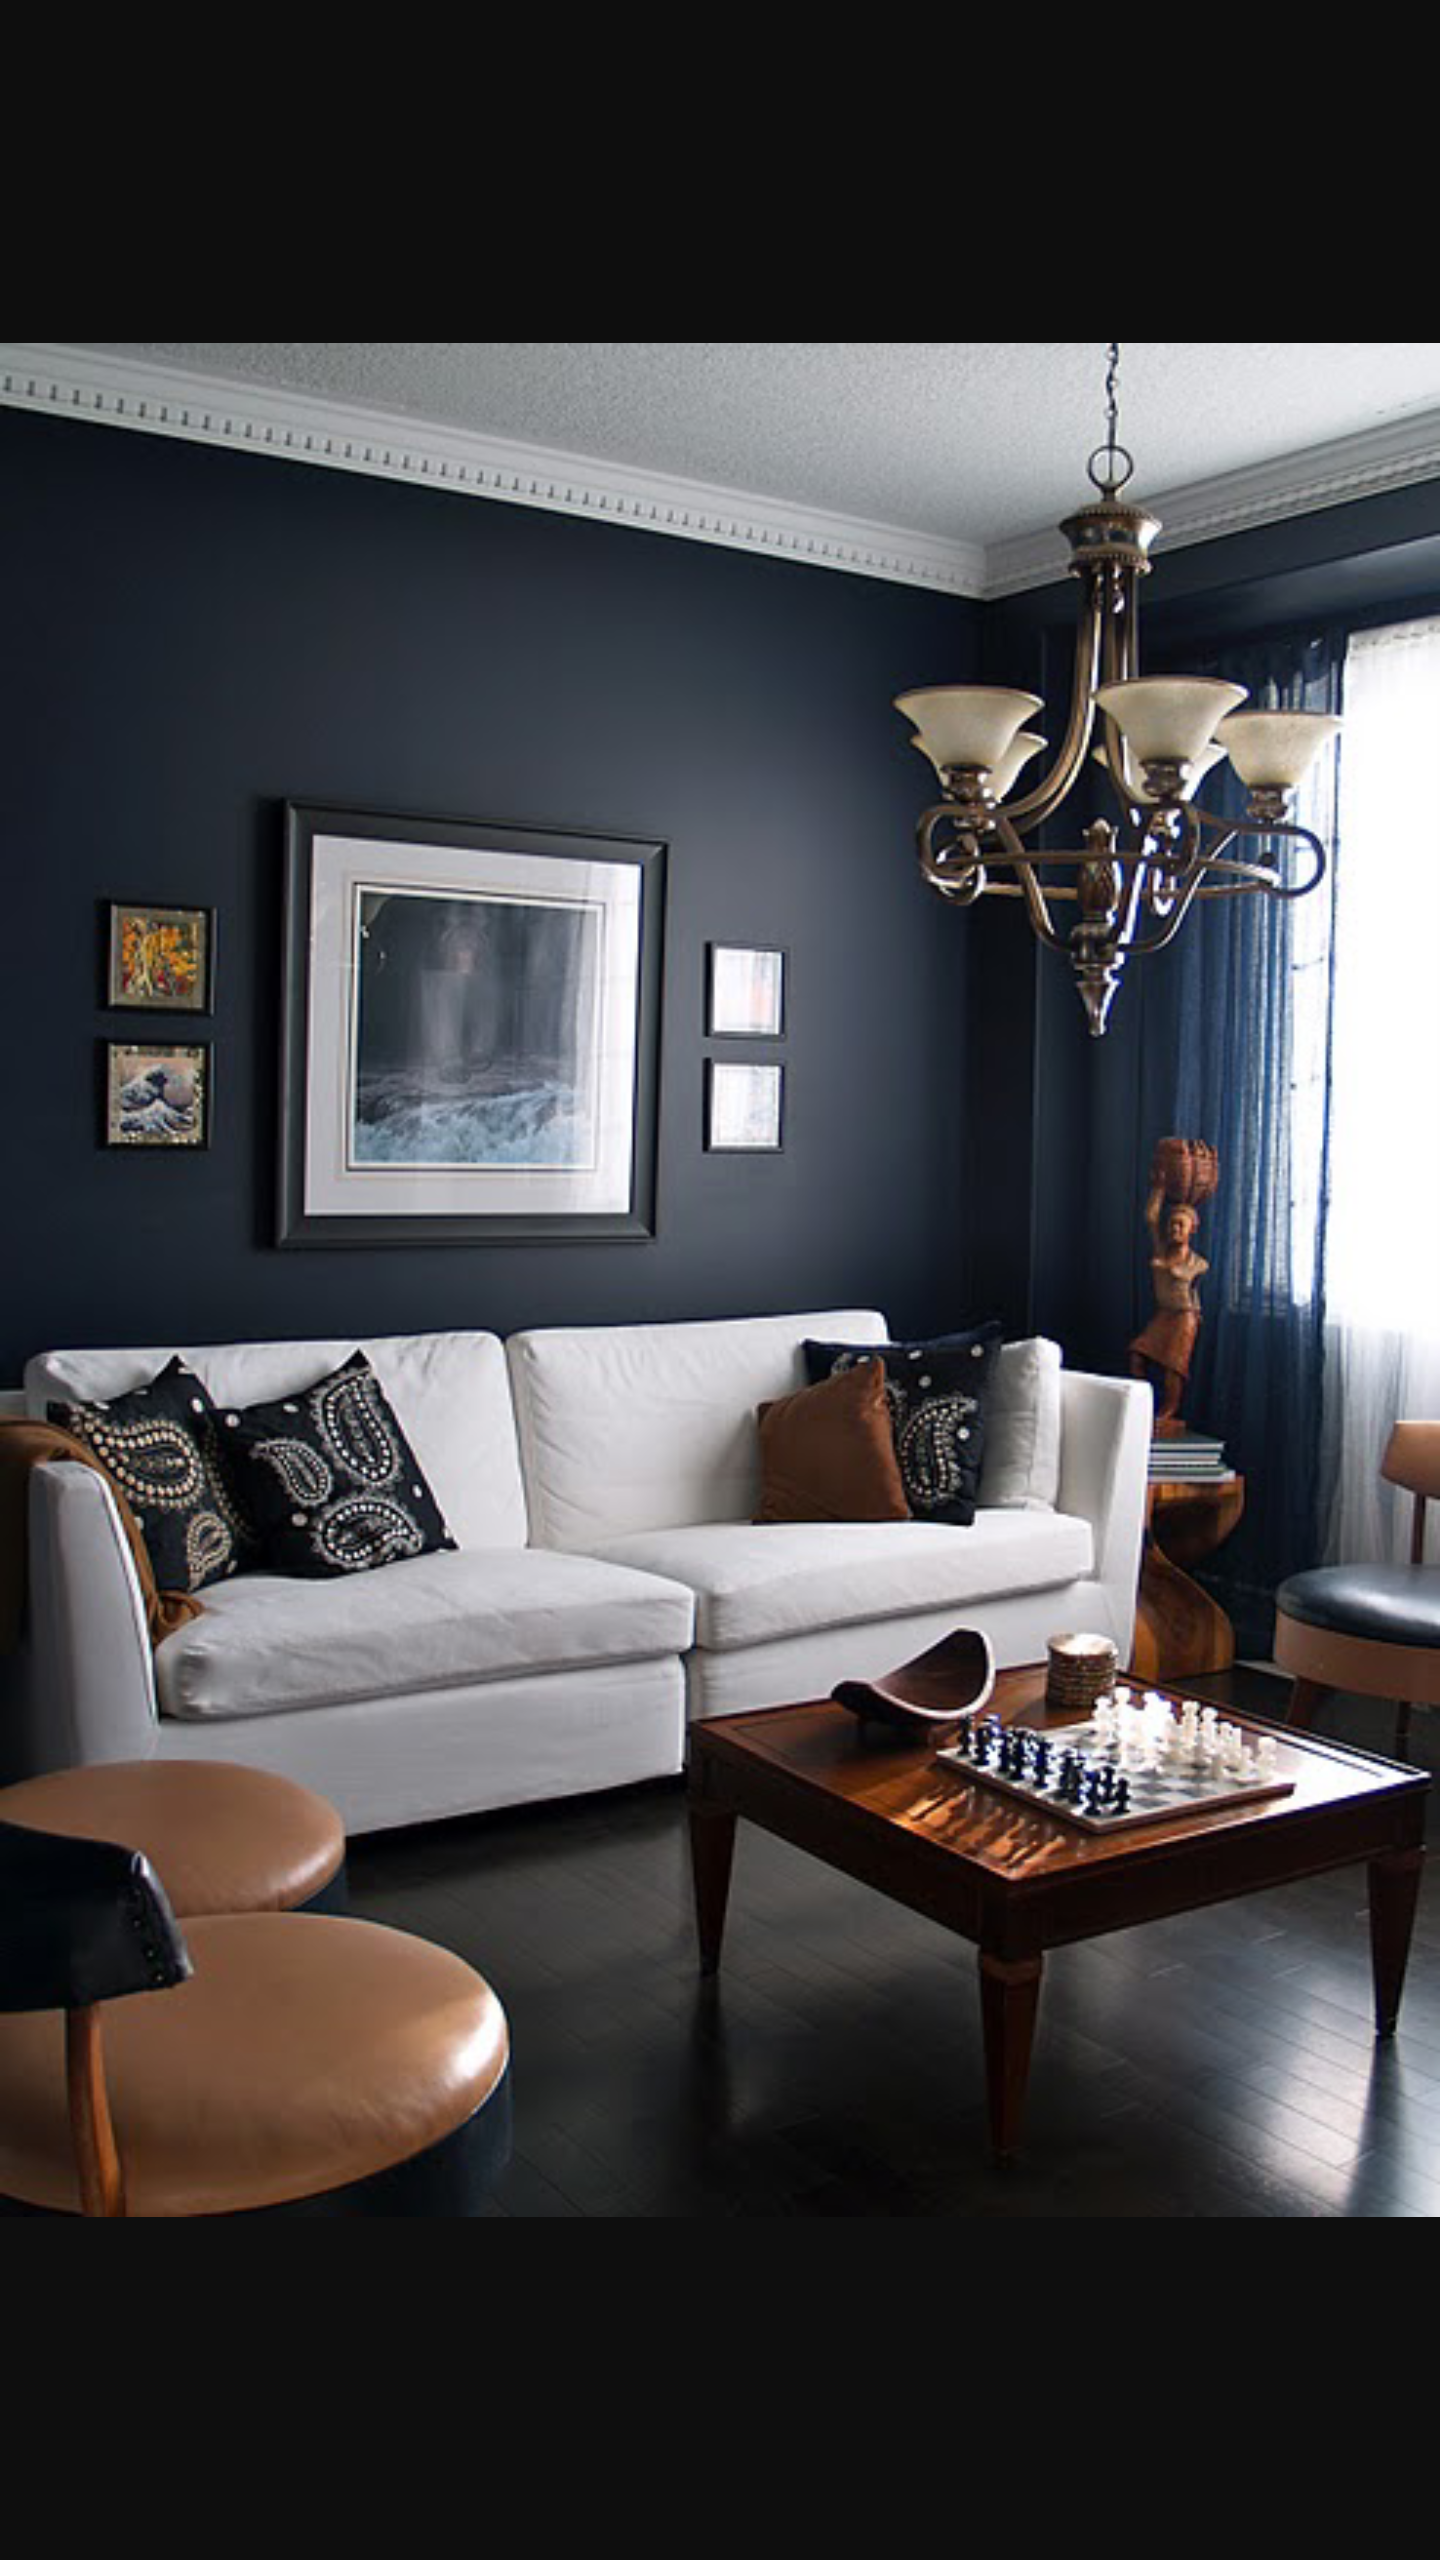 Living Room Wall Rustic Decor: Navy Living Rooms, Dark